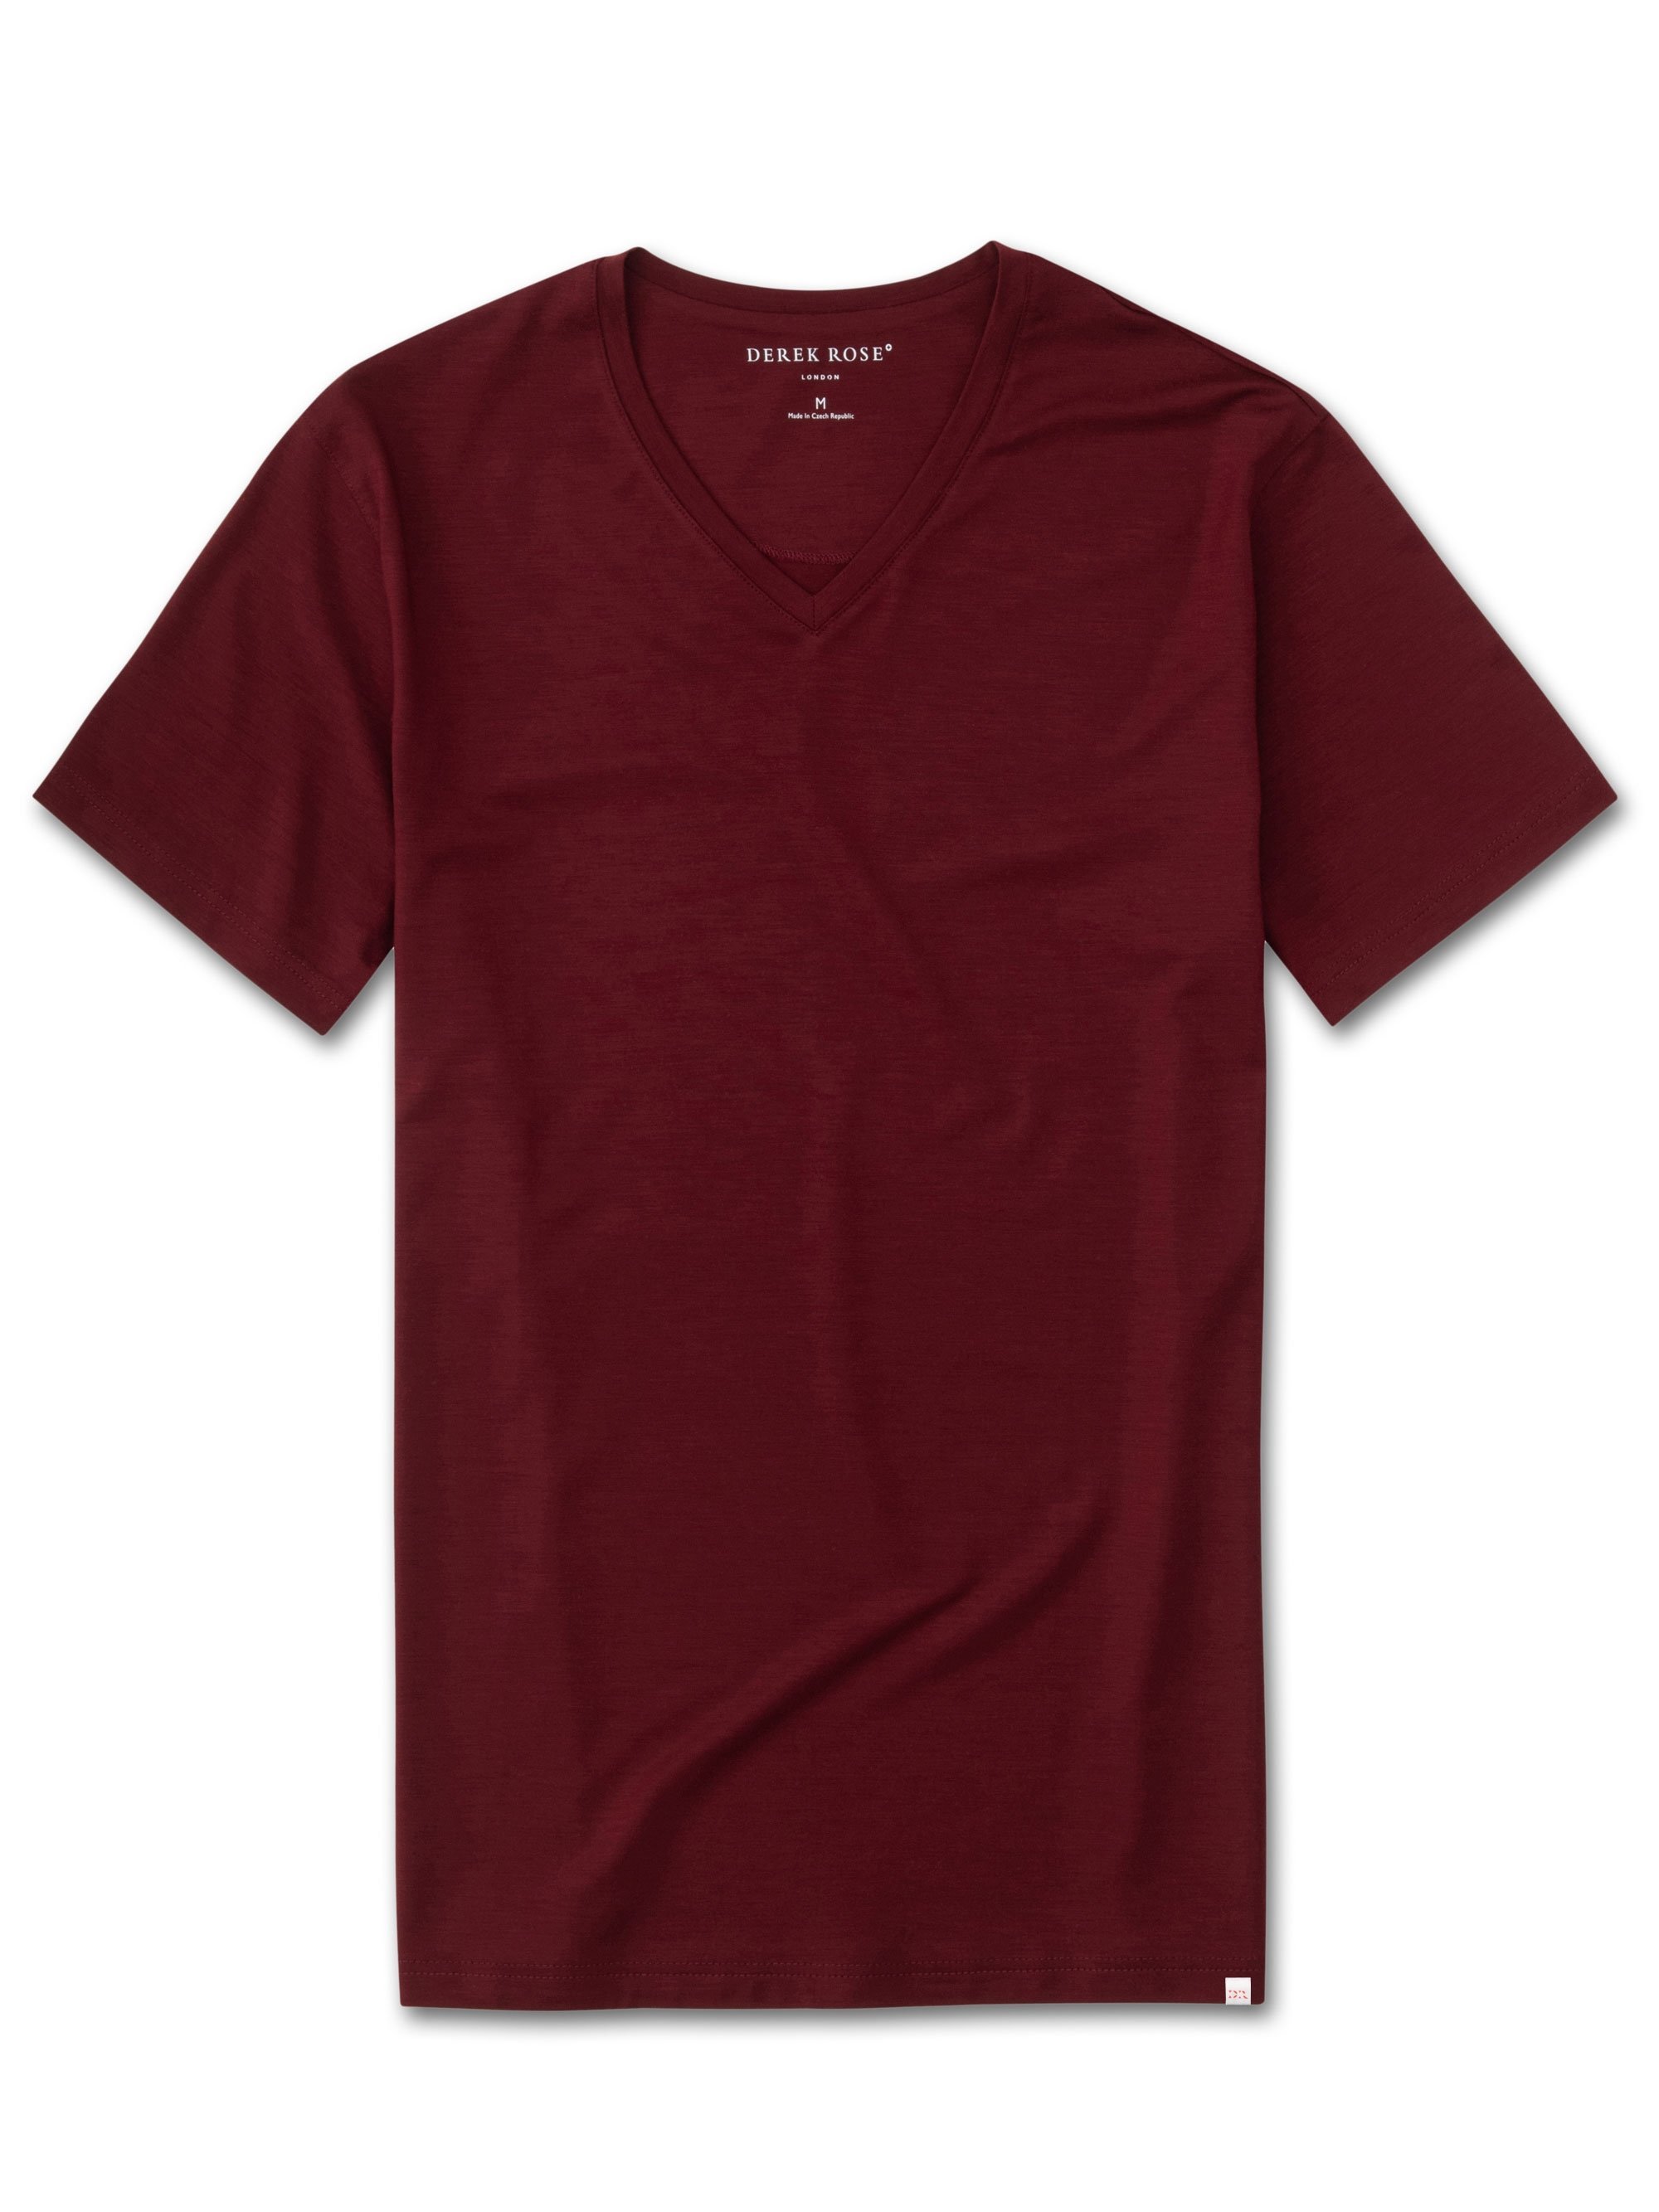 Men's Short Sleeve V-Neck T-Shirt Basel 7 Micro Modal Stretch Burgundy